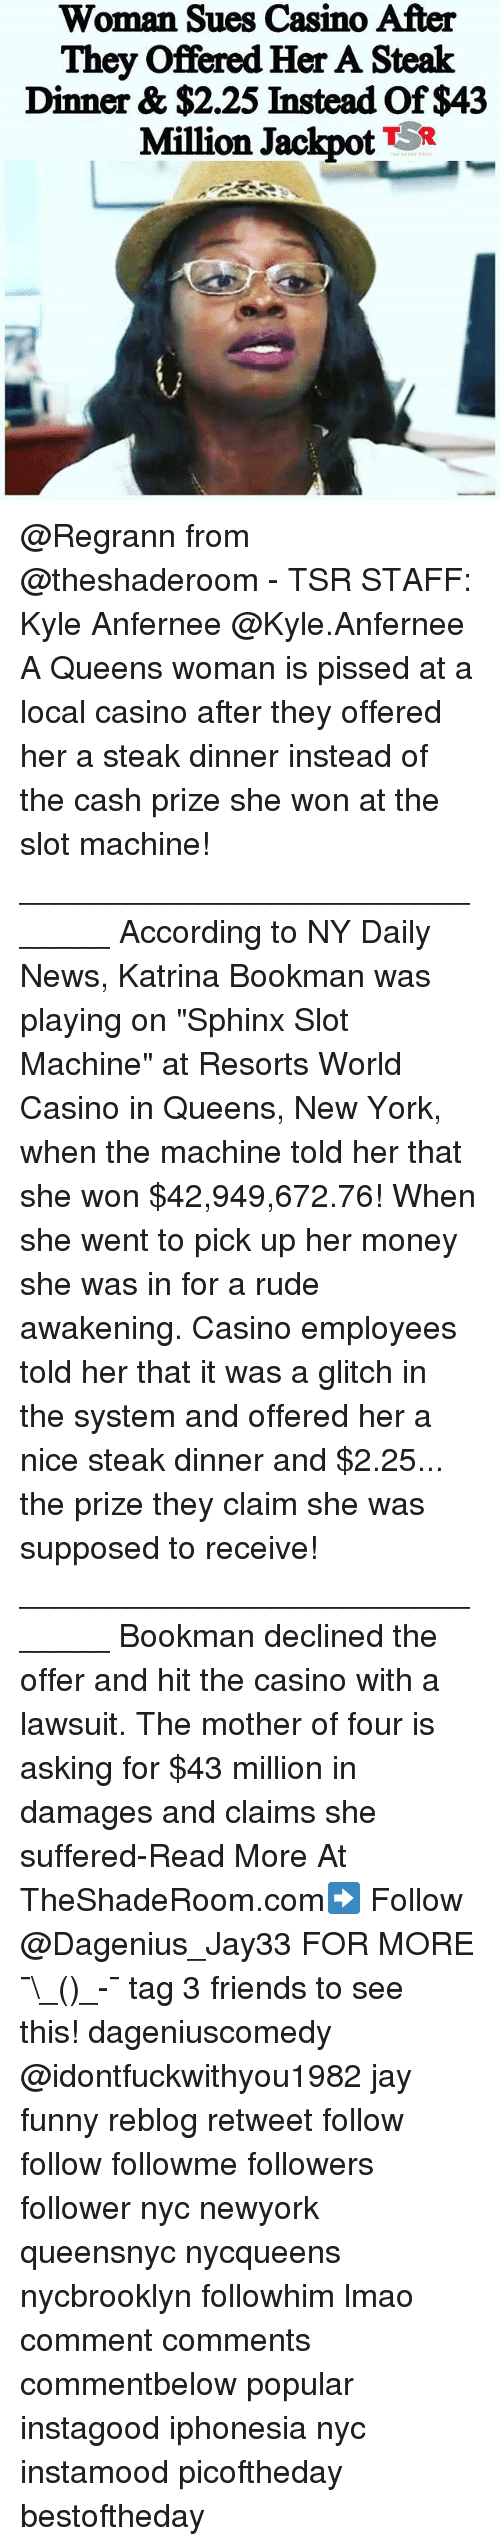 "Friends, Funny, and Jay: Woman Sues Casino After  They offered Her A Steak  Dinner & $2.25 Instead Of $43  Million Jackpot  TSR @Regrann from @theshaderoom - TSR STAFF: Kyle Anfernee @Kyle.Anfernee A Queens woman is pissed at a local casino after they offered her a steak dinner instead of the cash prize she won at the slot machine! ______________________________ According to NY Daily News, Katrina Bookman was playing on ""Sphinx Slot Machine"" at Resorts World Casino in Queens, New York, when the machine told her that she won $42,949,672.76! When she went to pick up her money she was in for a rude awakening. Casino employees told her that it was a glitch in the system and offered her a nice steak dinner and $2.25... the prize they claim she was supposed to receive! ______________________________ Bookman declined the offer and hit the casino with a lawsuit. The mother of four is asking for $43 million in damages and claims she suffered-Read More At TheShadeRoom.com➡️ Follow @Dagenius_Jay33 FOR MORE ¯\_(ツ)_-¯ tag 3 friends to see this! dageniuscomedy @idontfuckwithyou1982 jay funny reblog retweet follow follow followme followers follower nyc newyork queensnyc nycqueens nycbrooklyn followhim lmao comment comments commentbelow popular instagood iphonesia nyc instamood picoftheday bestoftheday"